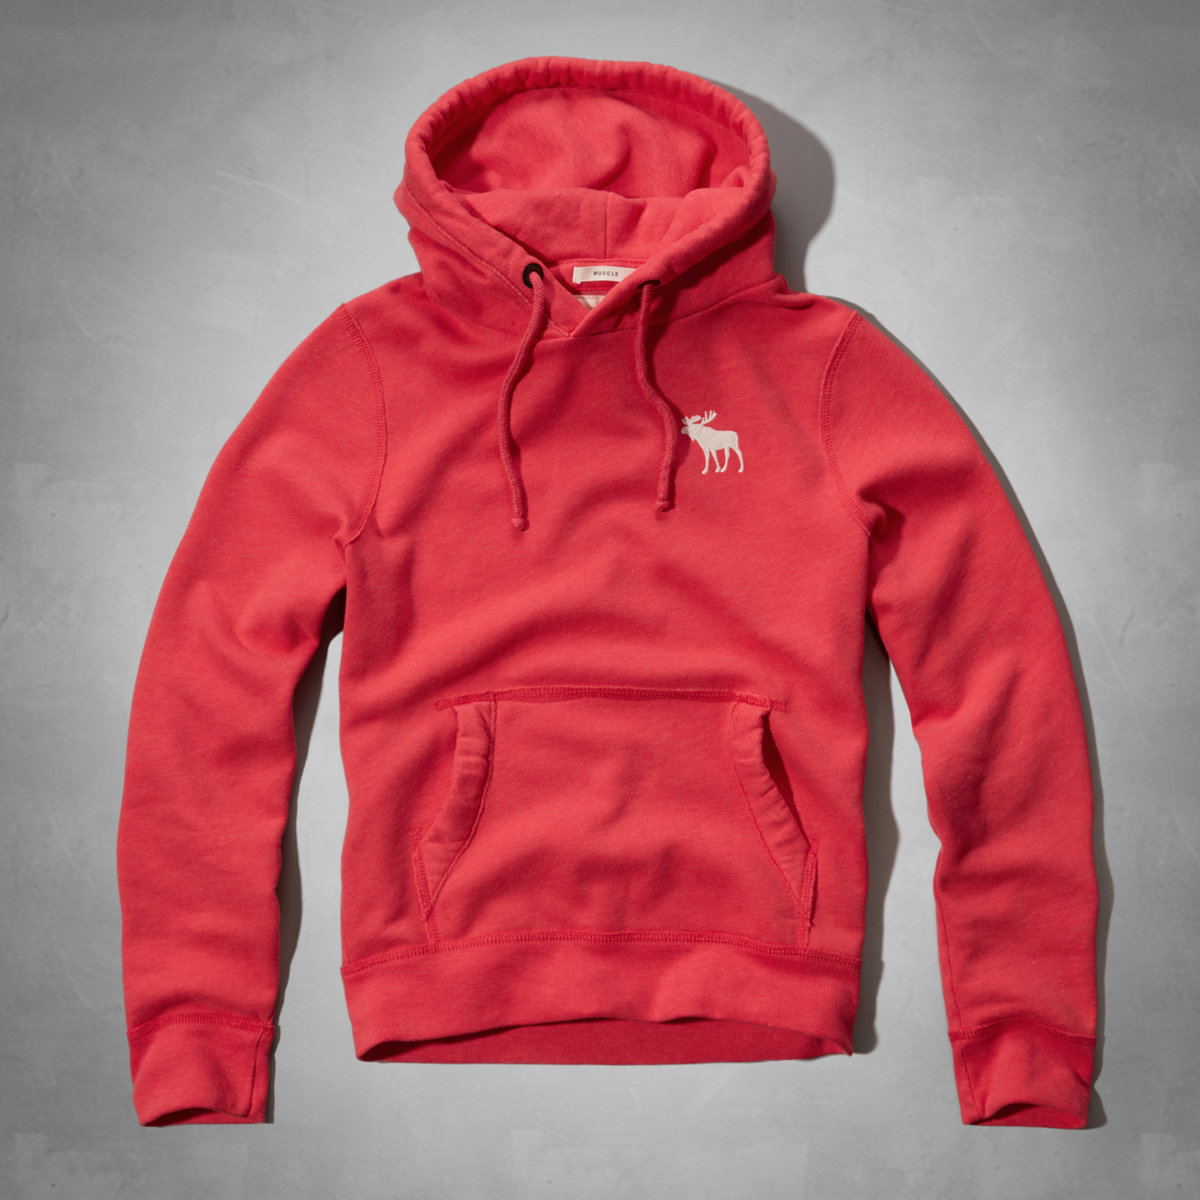 Abercrombie Hoodies Mens